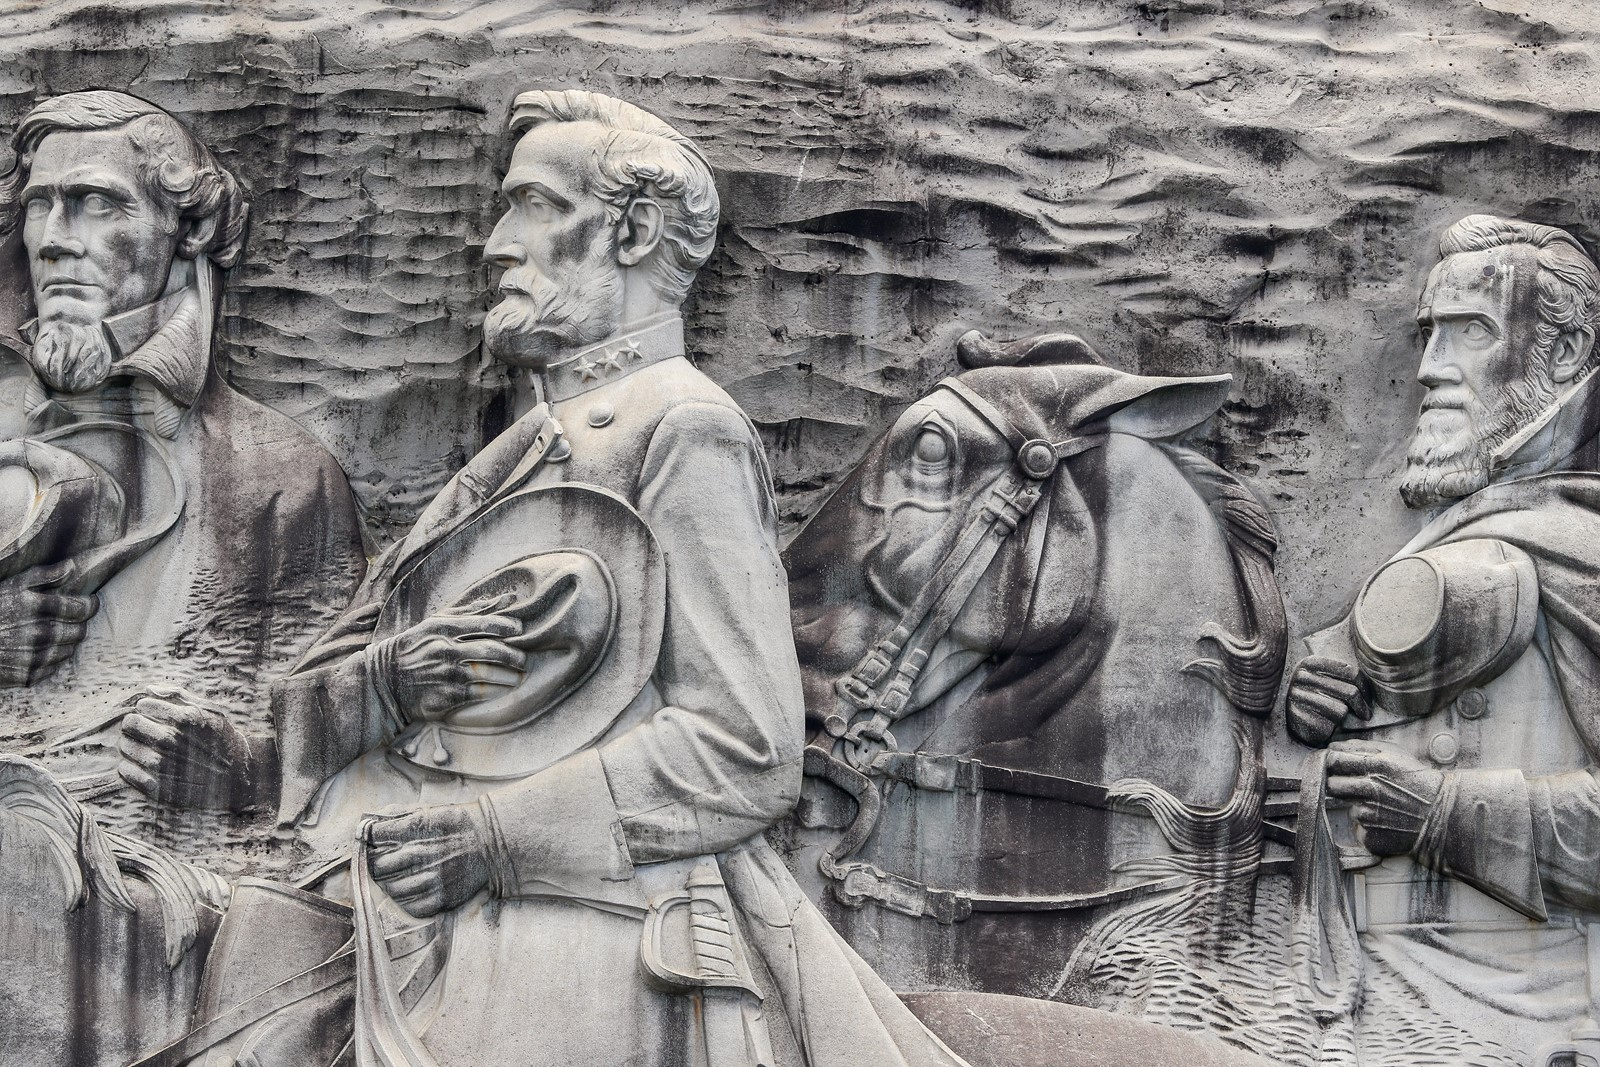 Georgia's Stone Mountain relief of Confederate President Jefferson Davis and Generals Robert E. Lee and Stonewall Jackson, from left, wasn't complete until 1972. — Photograph: Erik S. Lesser/European Pressphoto Agency.